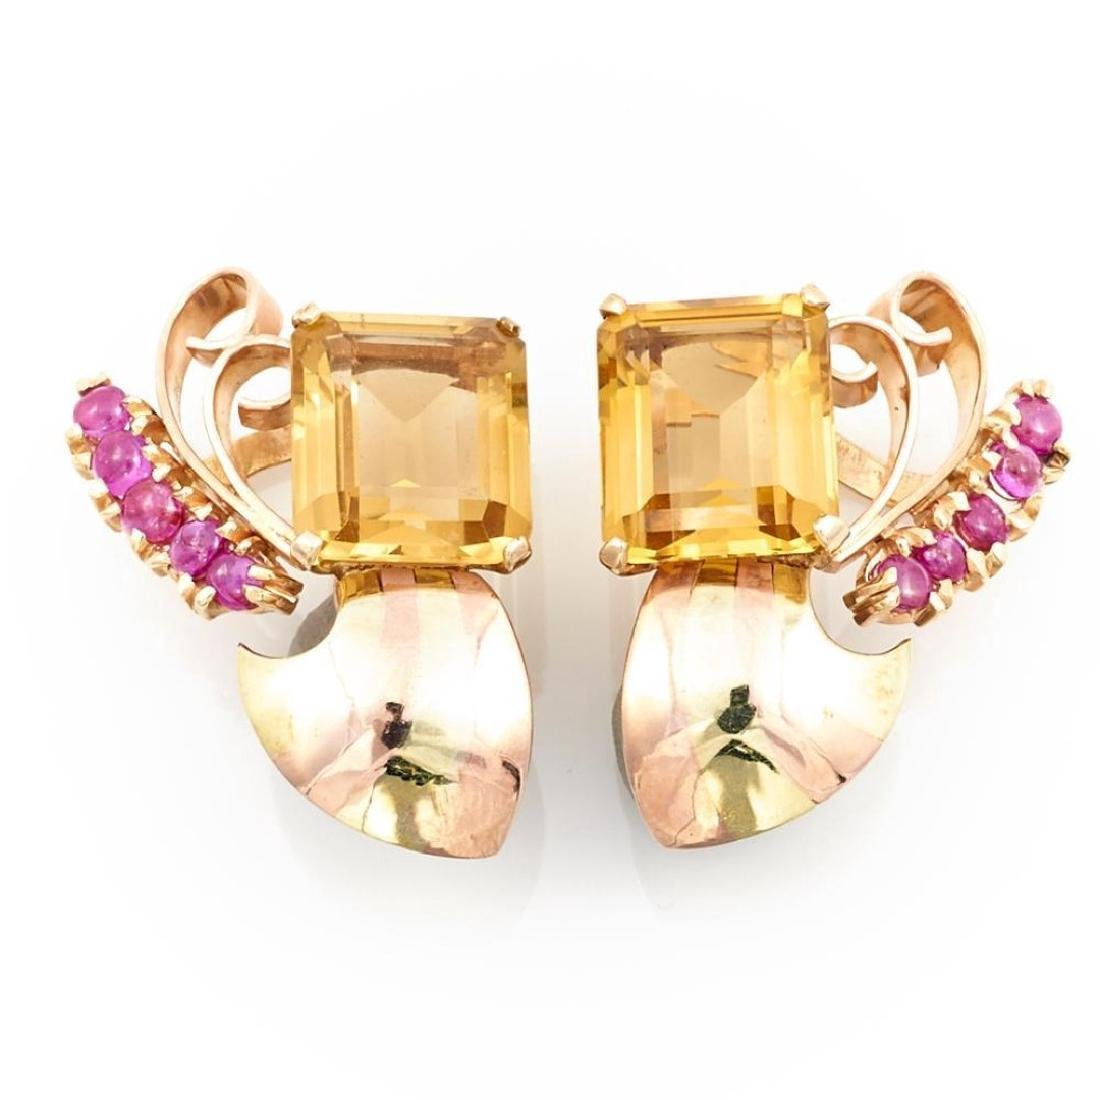 Citrine, ruby and 14k pink and yellow gold earrings